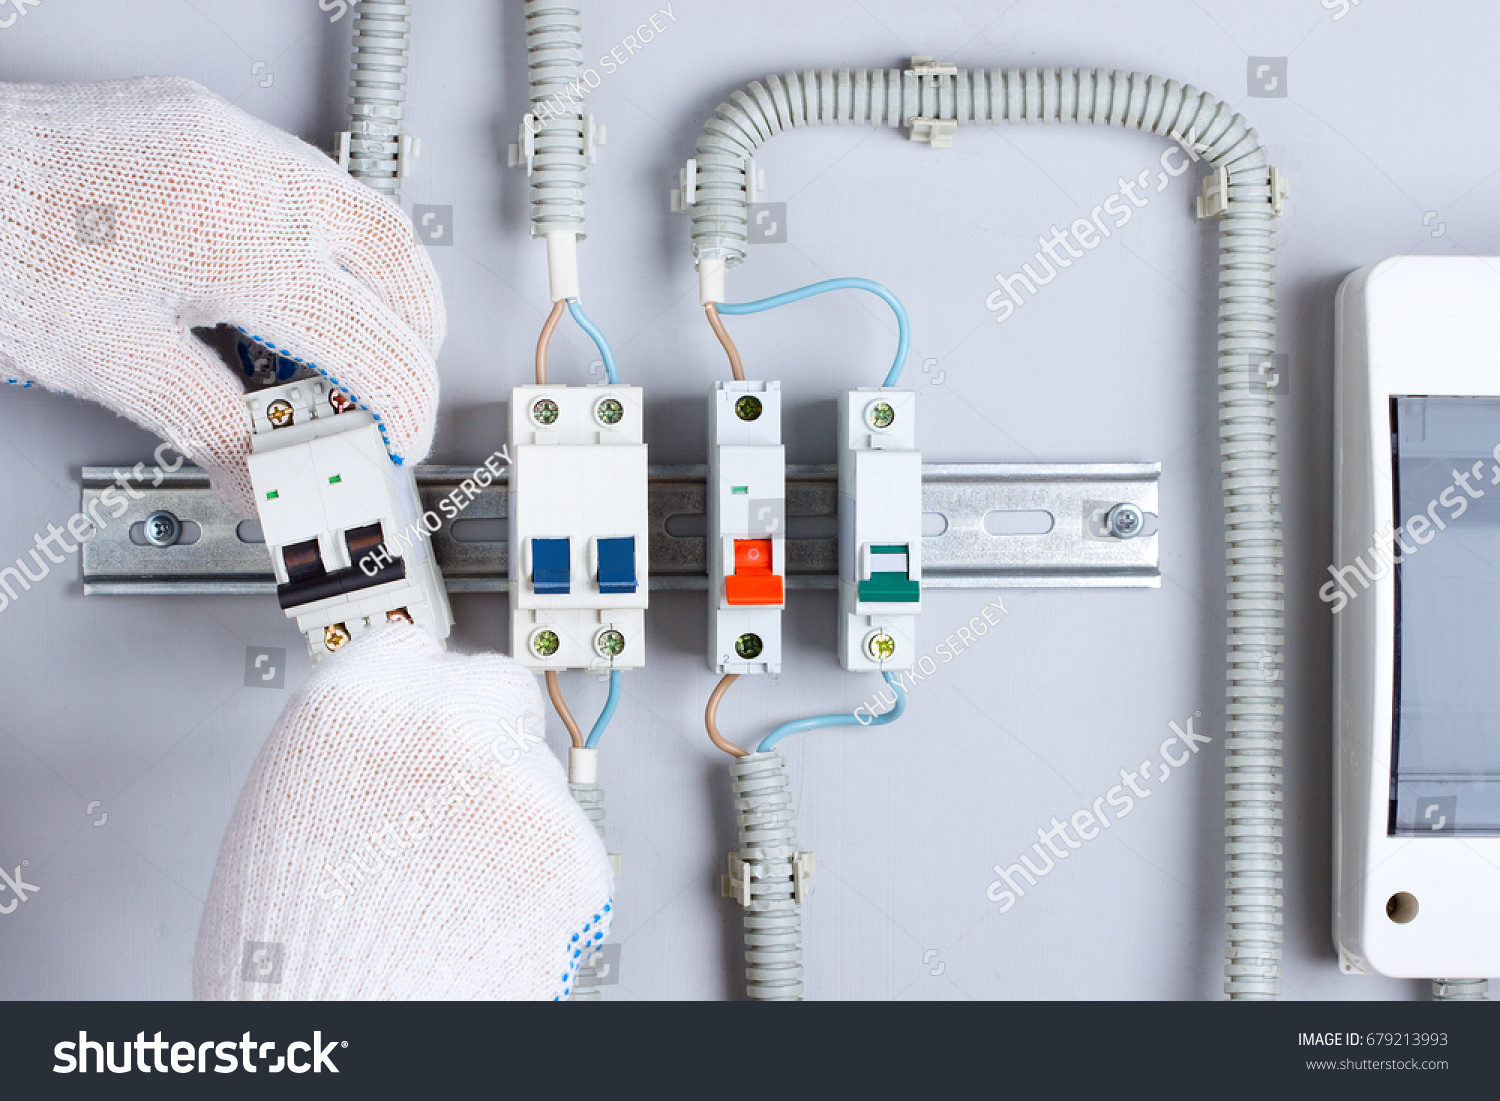 Hands Electrician Switches Fuse Box Stock Photo Edit Now 679213993 Electrical Of With In